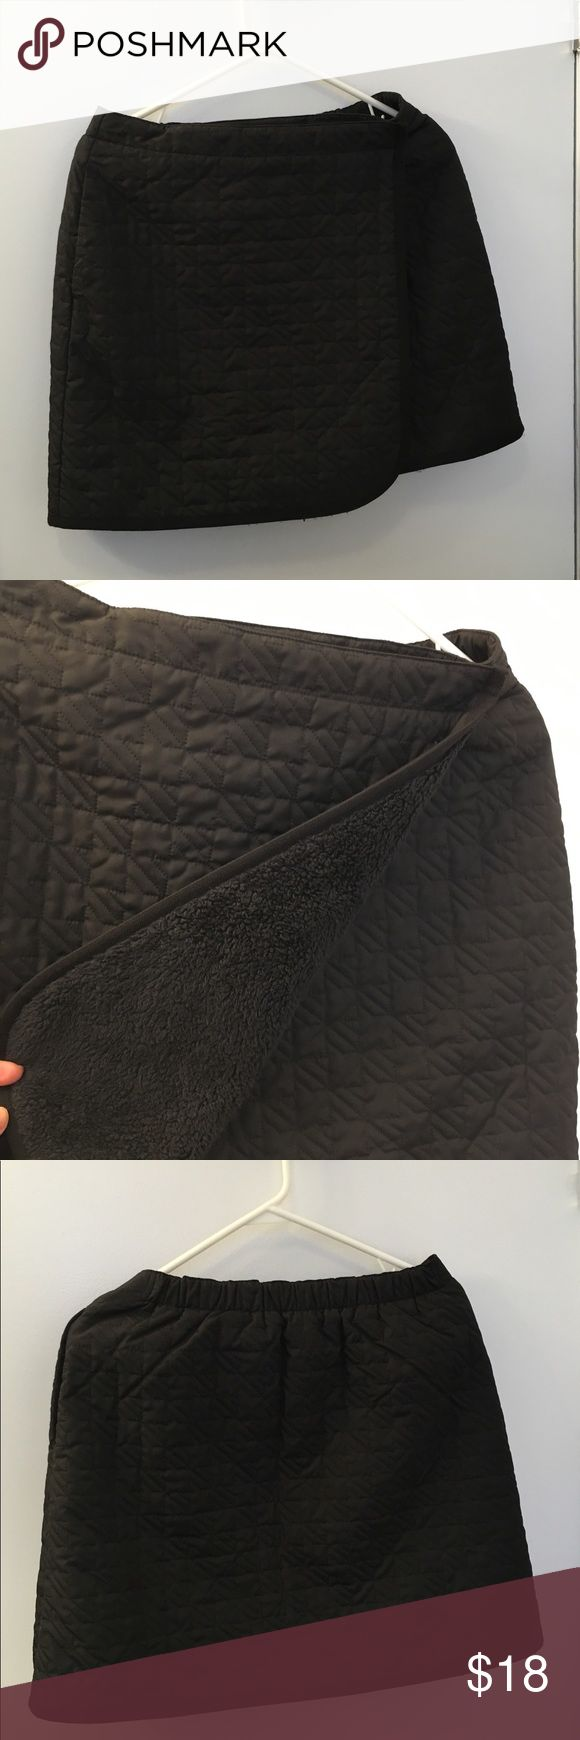 Uniqlo Skirt Warm Black Skirt Size S-M By Uniqlo made a quilted fabric woven, fleece interior lining with pockets. Fit perfectly s-m many button closure. 100%Polyester. Great Condition Uniqlo Skirts Midi